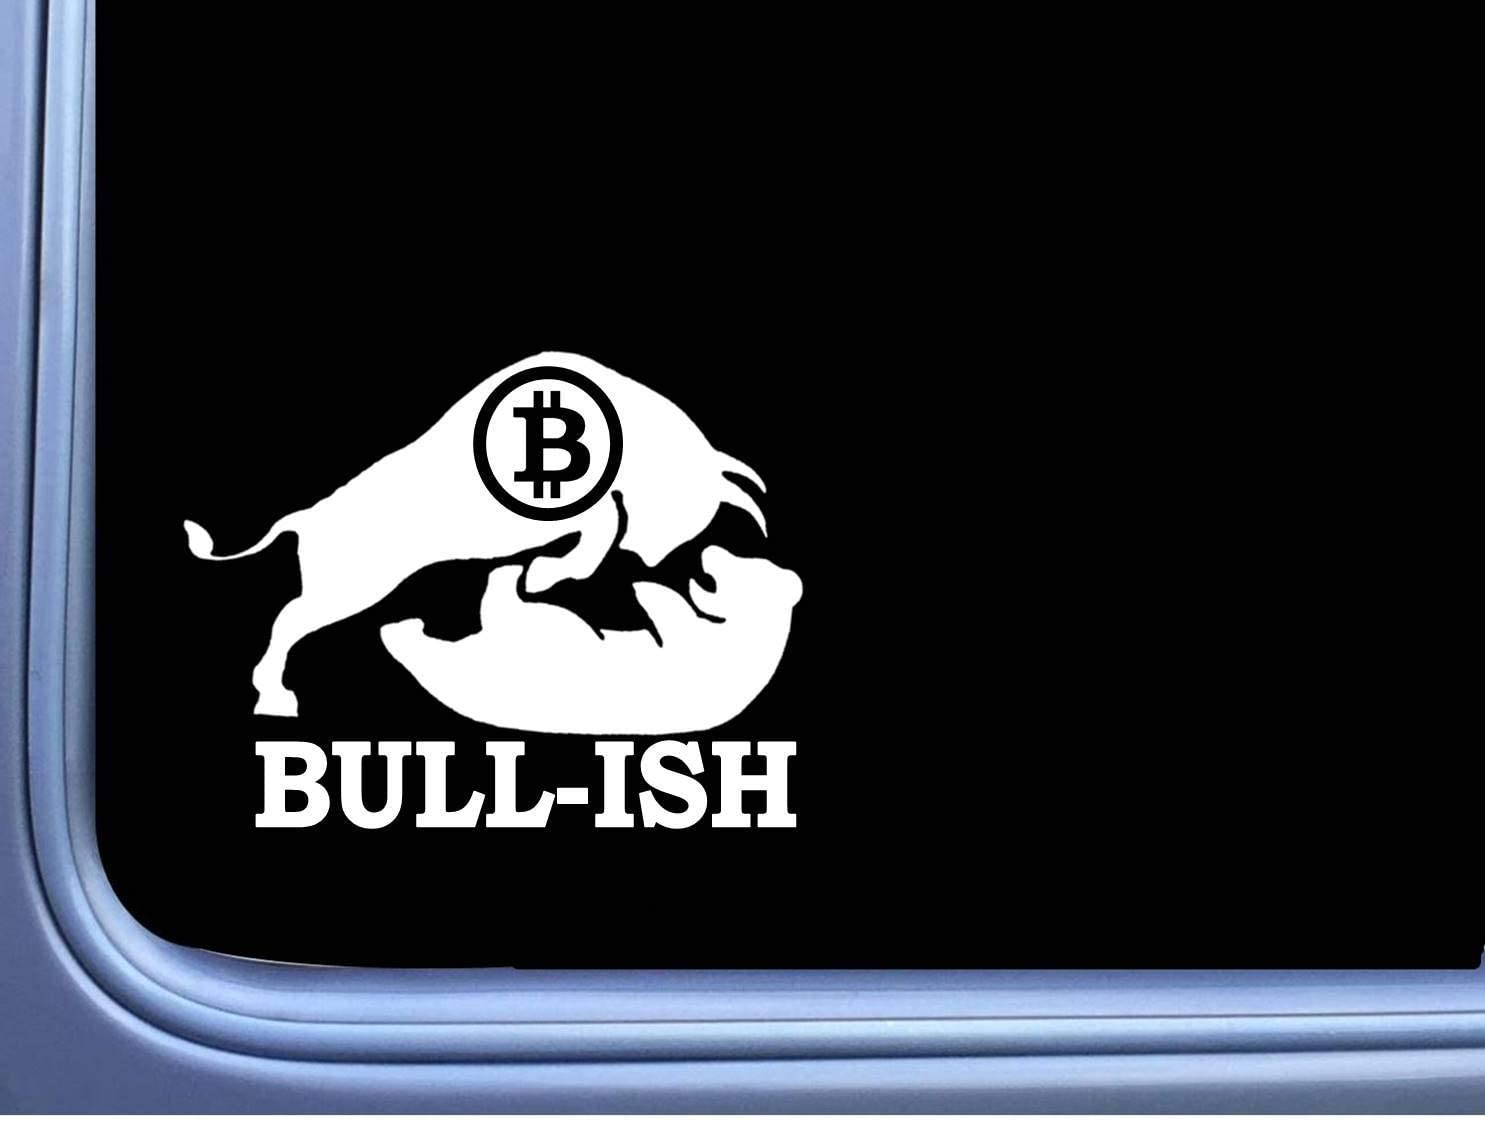 "Bullish Bitcoin TP 265 6"" Stock Market Decal Sticker Crypto Wallet Investing Vinyl Decal for Cars, Trucks, Laptops"